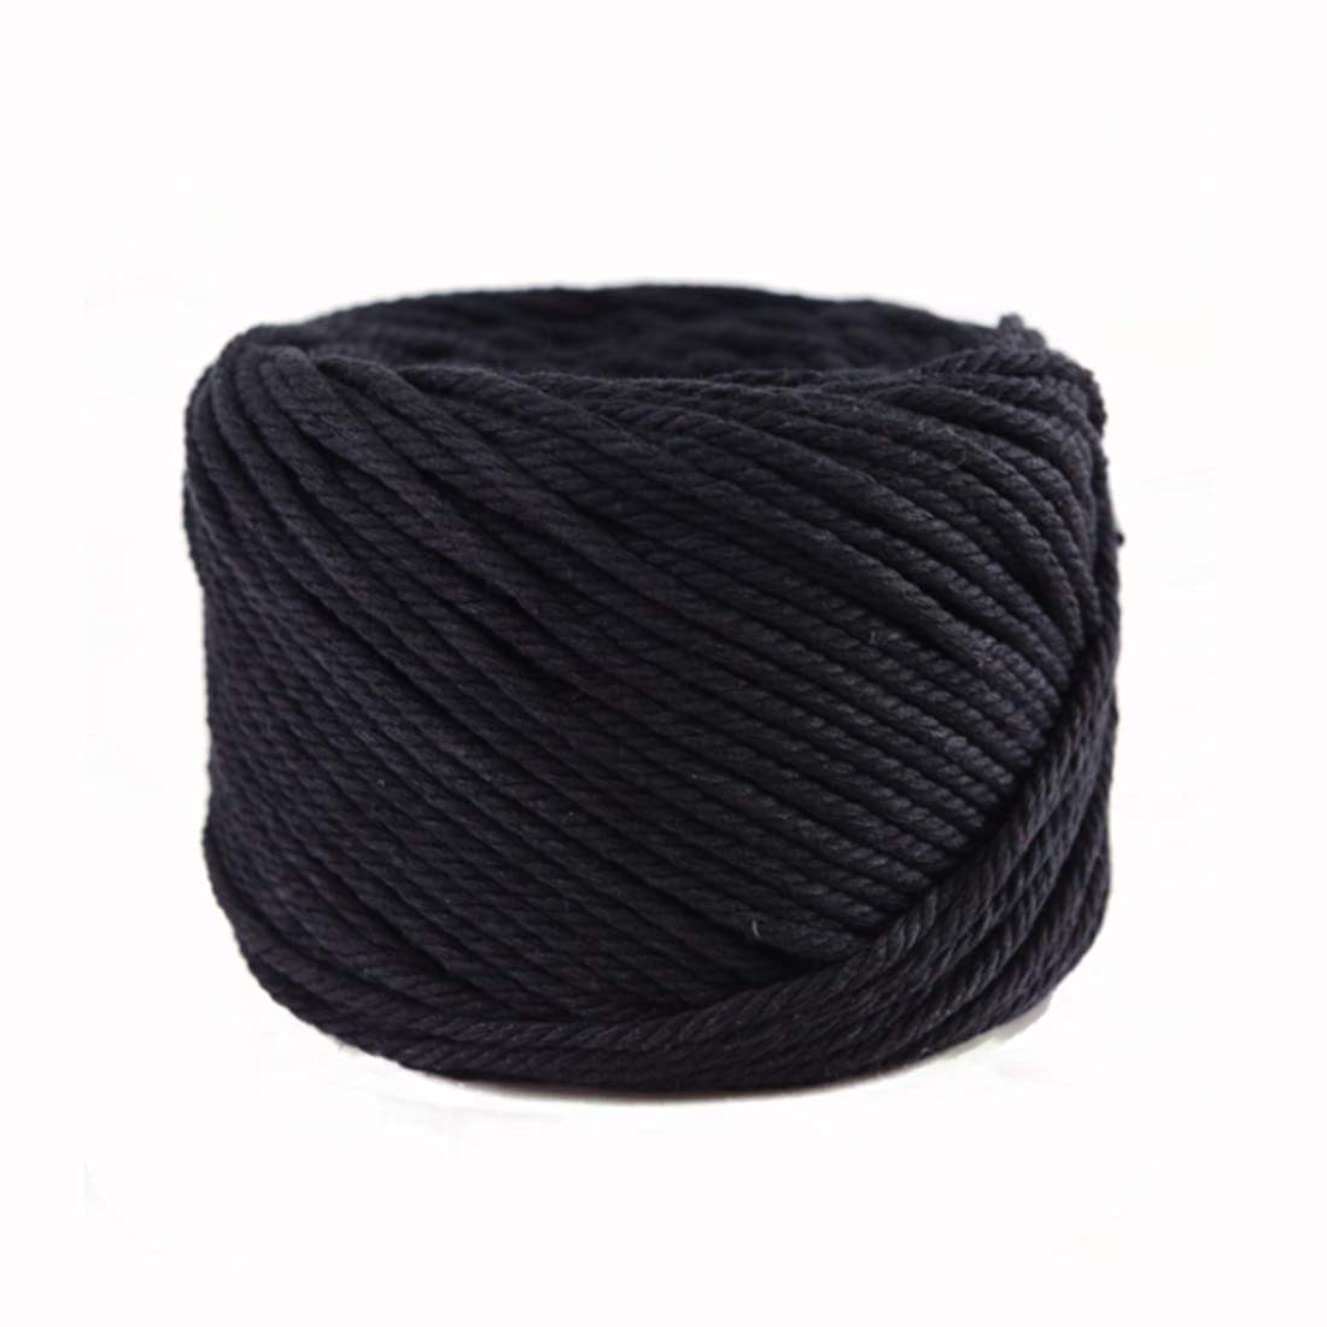 (Black, 6mm x 50m(About 55 yd)) Handmade Decorations Natural Cotton Bohemia Macrame DIY Wall Hanging Plant Hanger Craft Making Knitting Cord Rope Natural Color Beige Macramé Cord